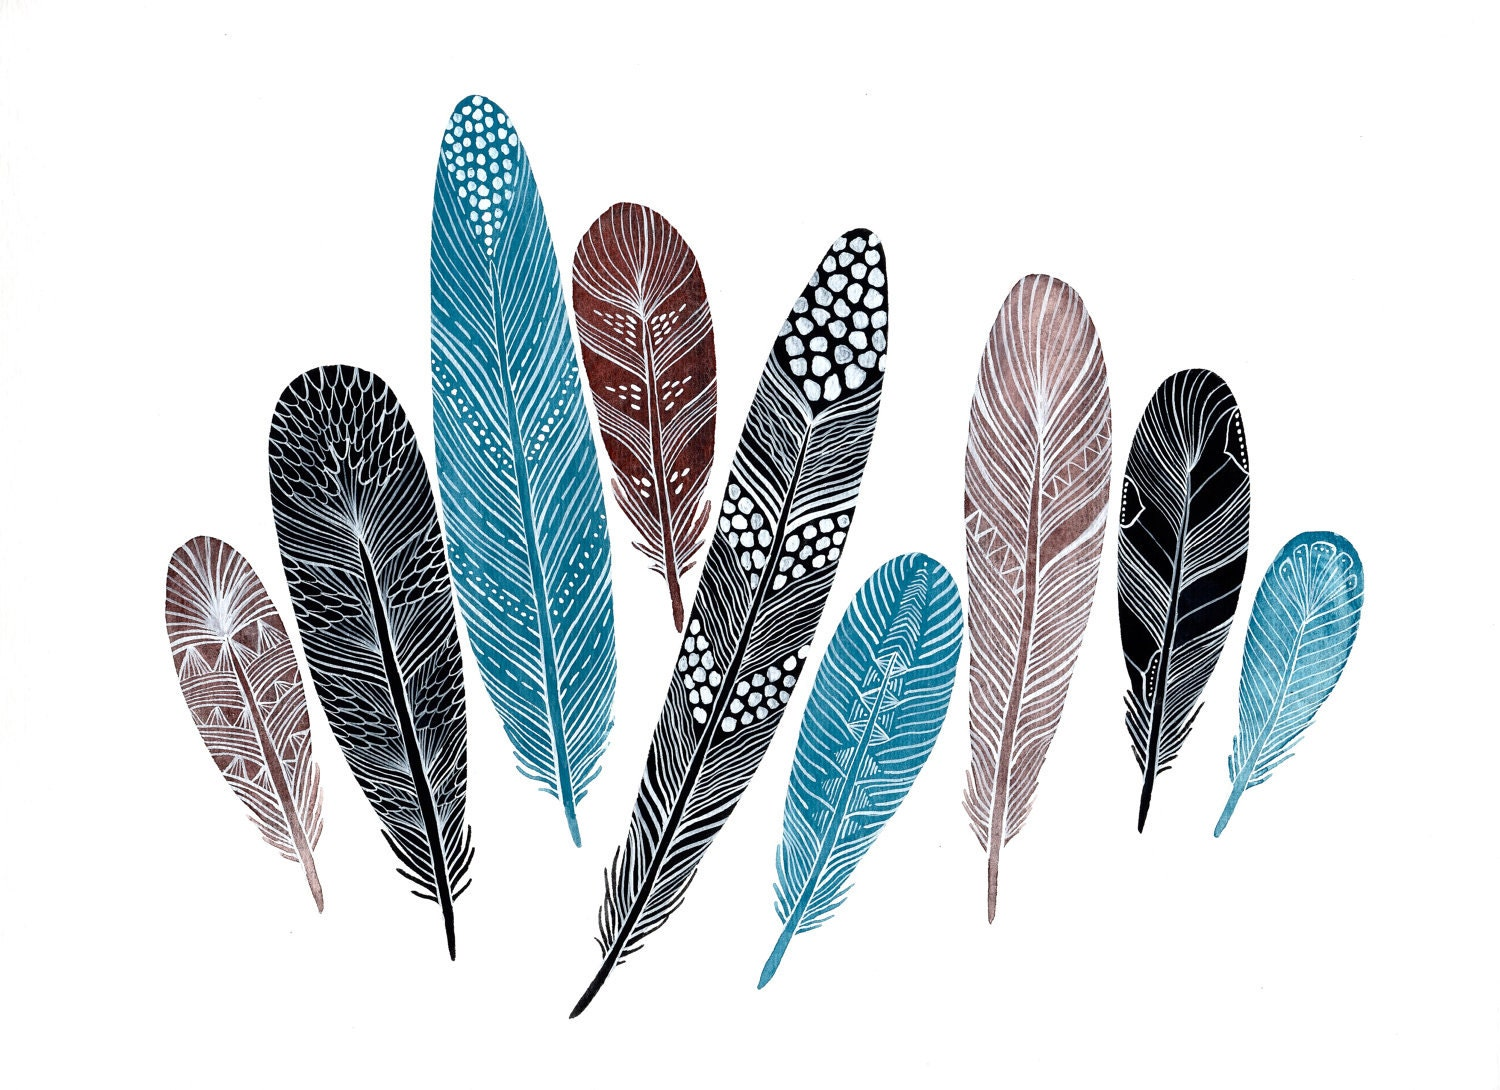 Jewels Feather Collection Large Archival Print by RiverLuna: https://www.etsy.com/listing/88177122/jewels-feather-collection...